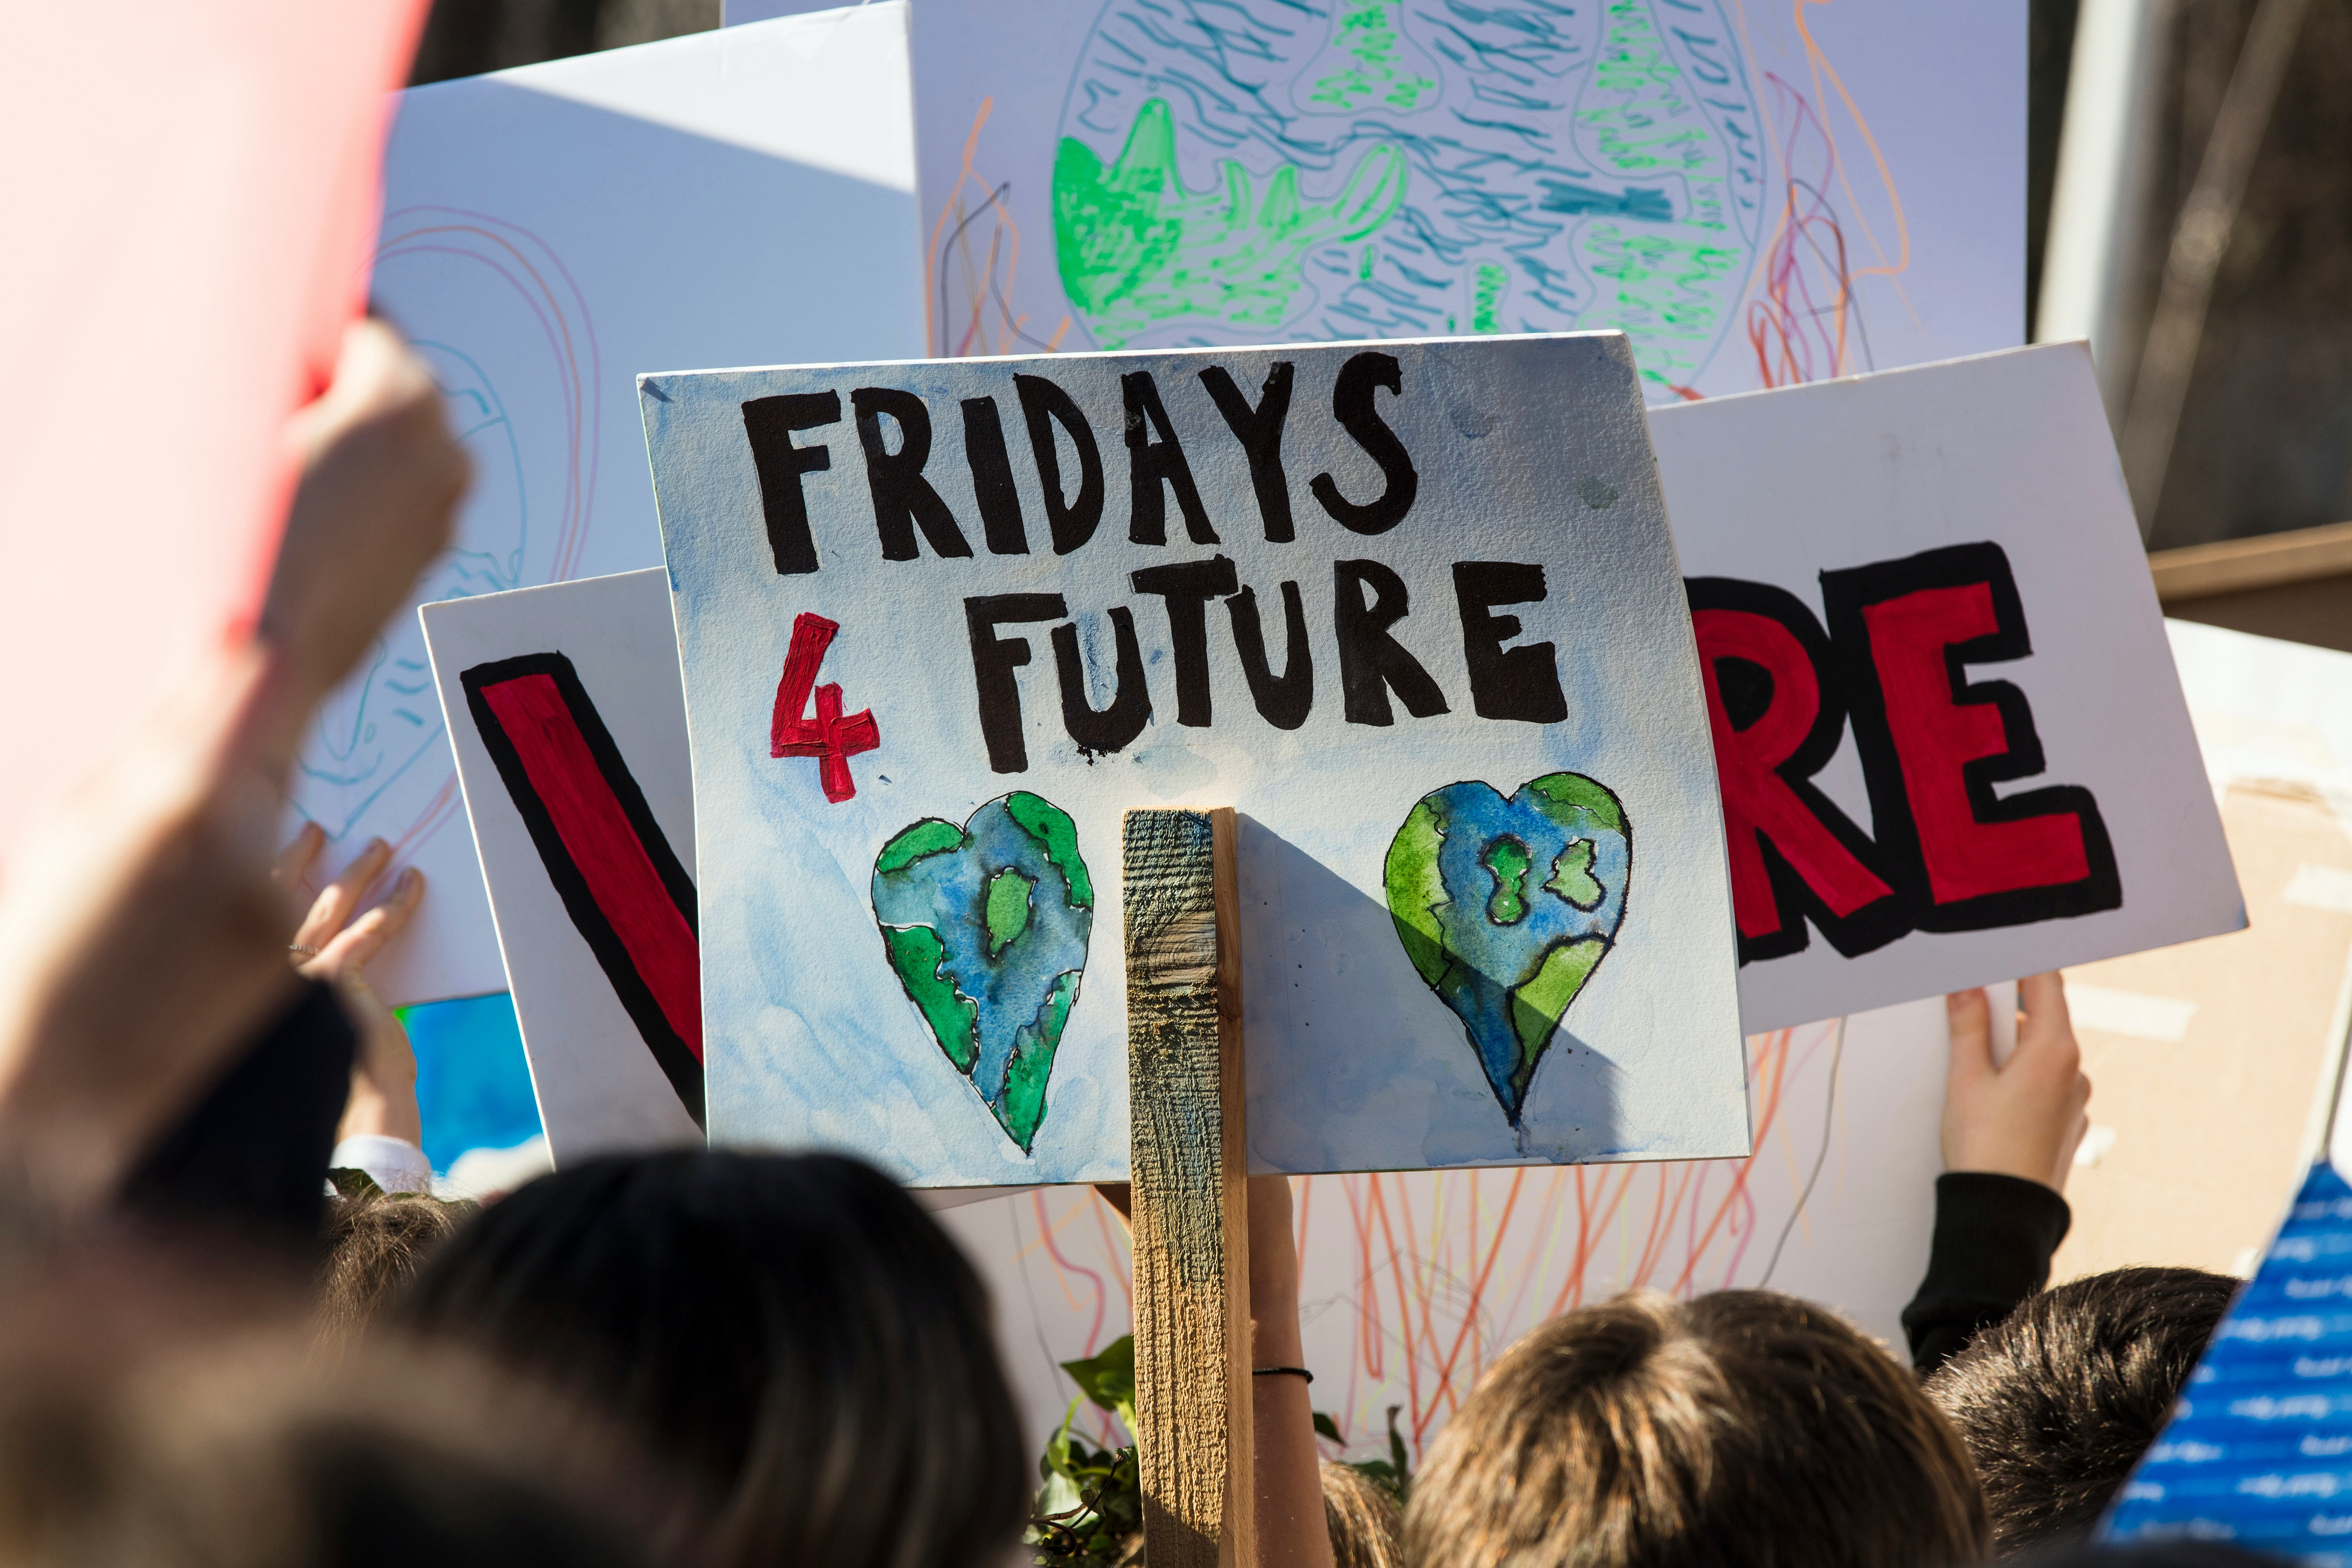 'They'll give me a detention but it'll be worth it' – a climate scientist interviews his climate striking daughter